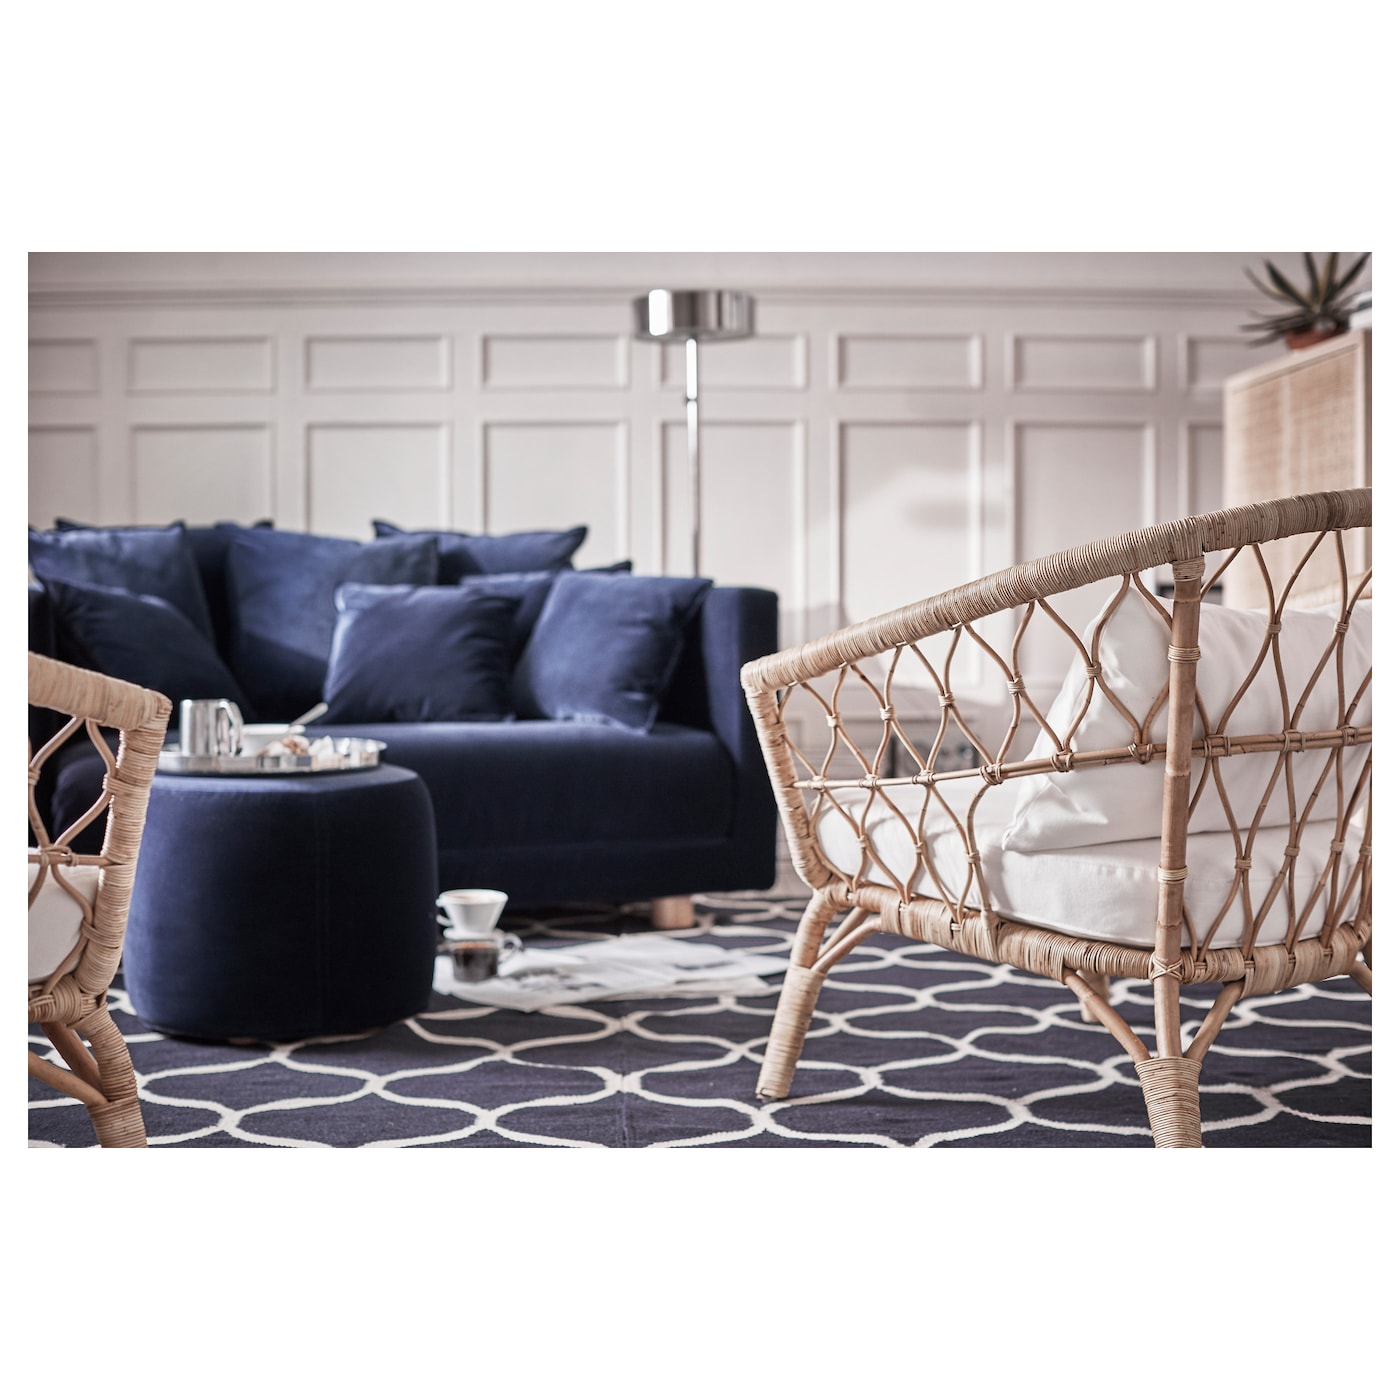 stockholm 2017 pouffe sandbacka dark blue 50 x 50 cm ikea. Black Bedroom Furniture Sets. Home Design Ideas